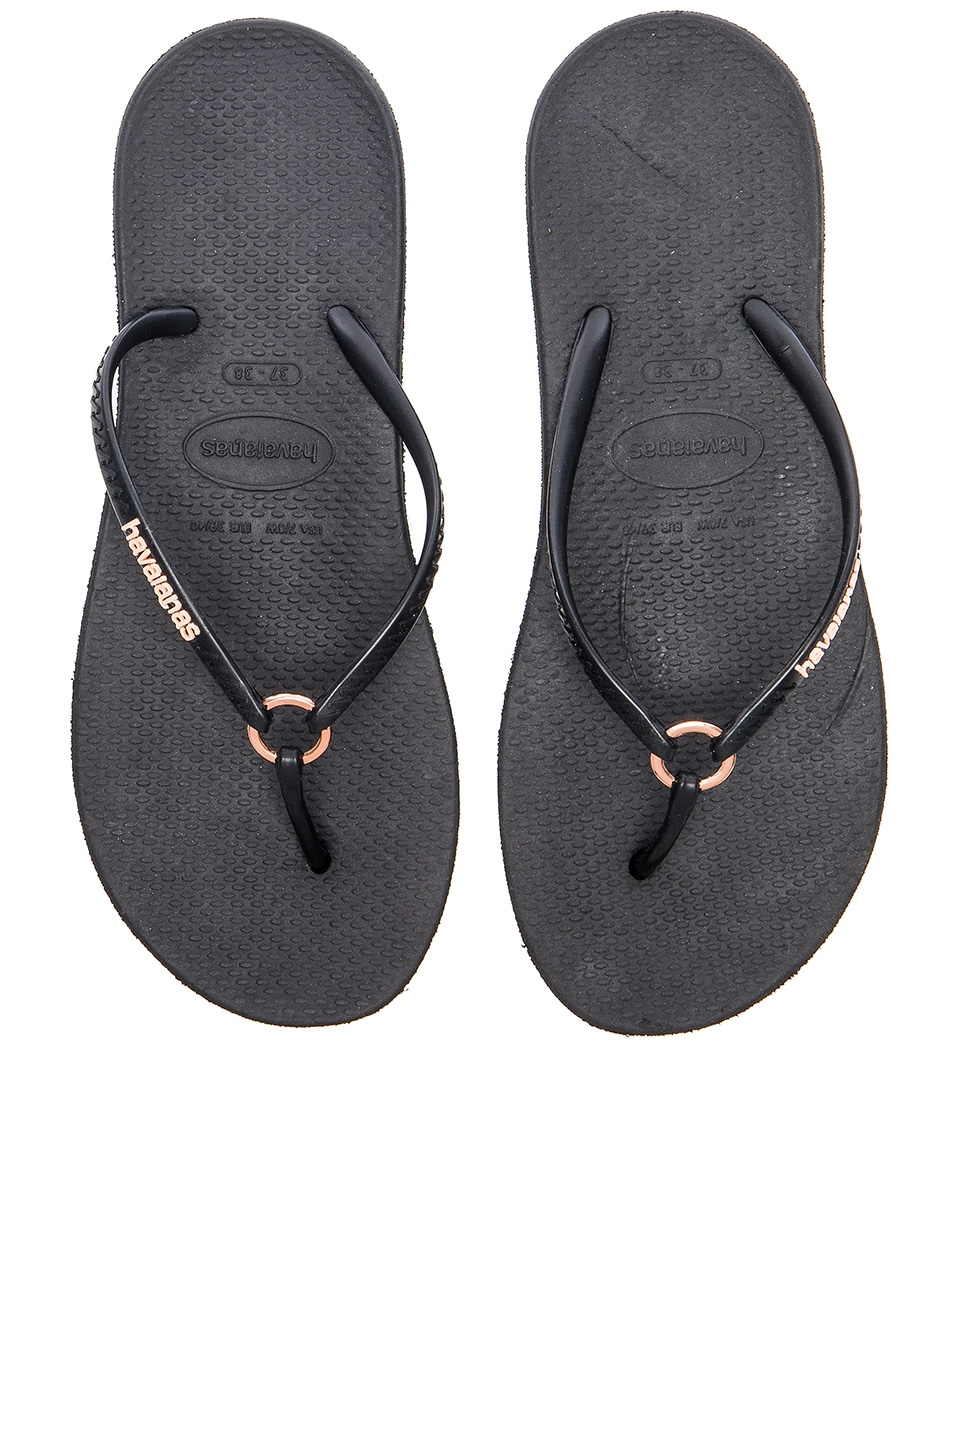 76ebf197f Havaianas Ring Flip Flop in Black